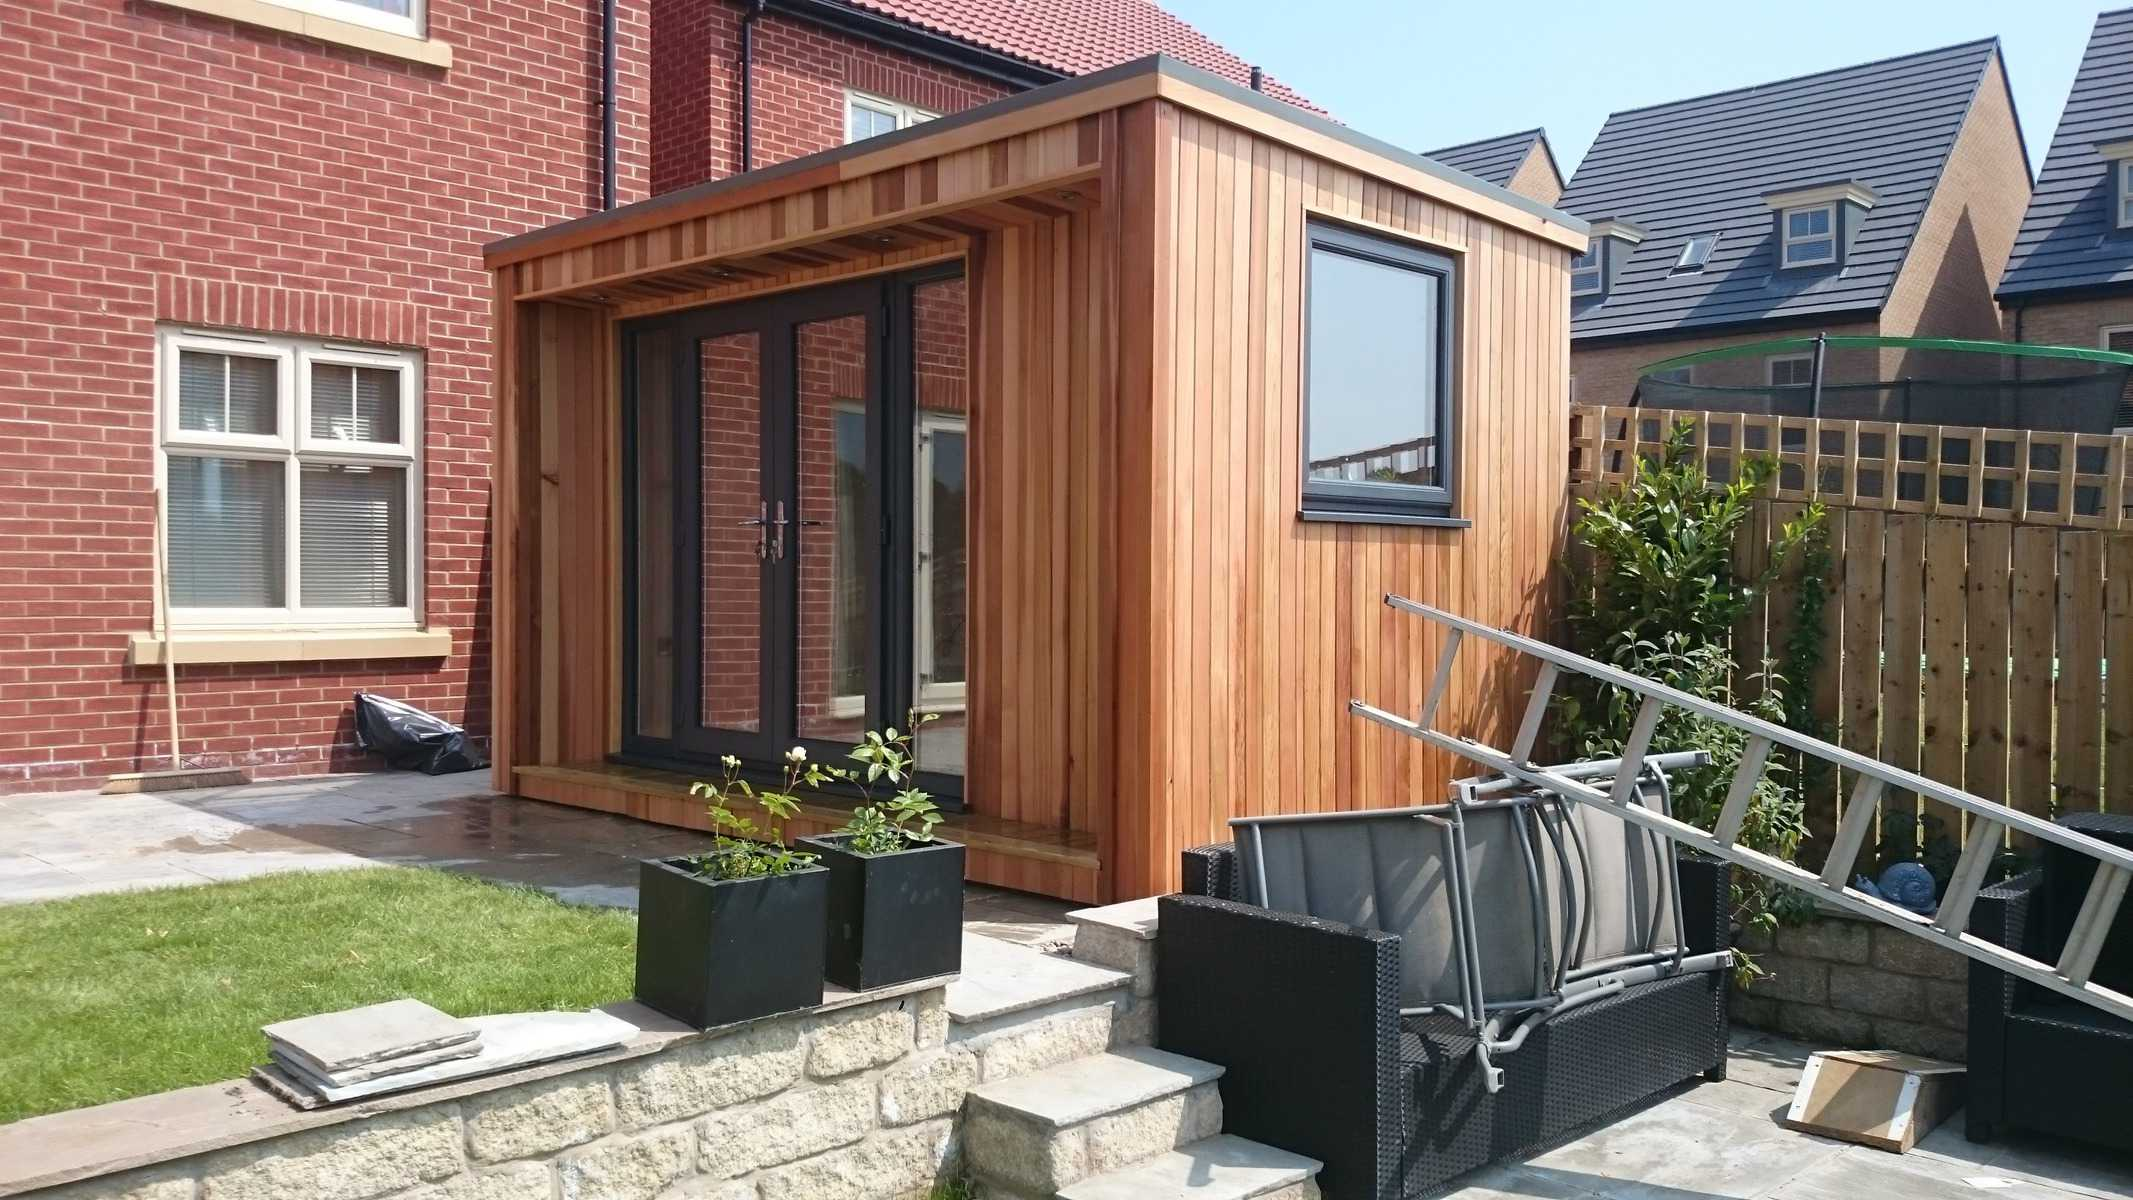 Summer Houses for Sale